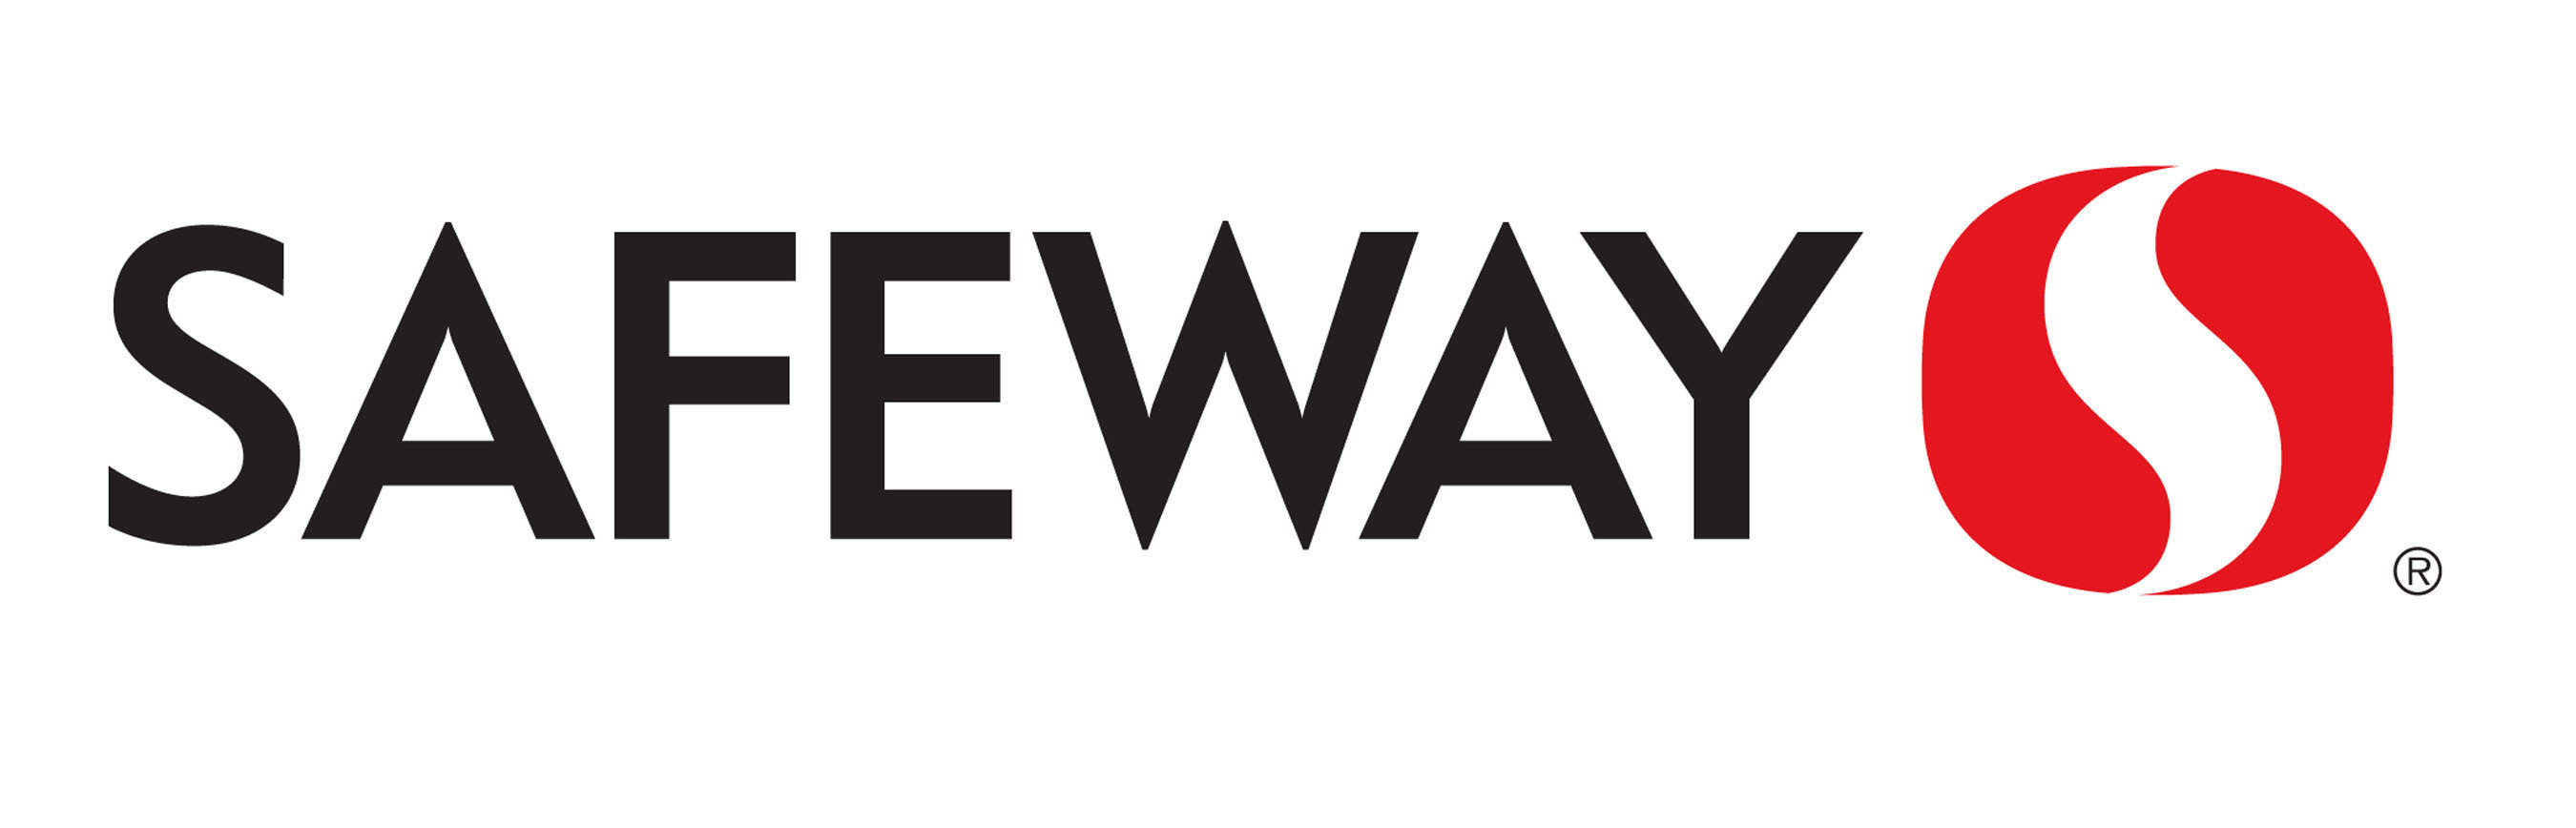 Safeway Recalls Various Refrigerated and Deli Products in Cooperation with Recalls by Reser's Fine Foods